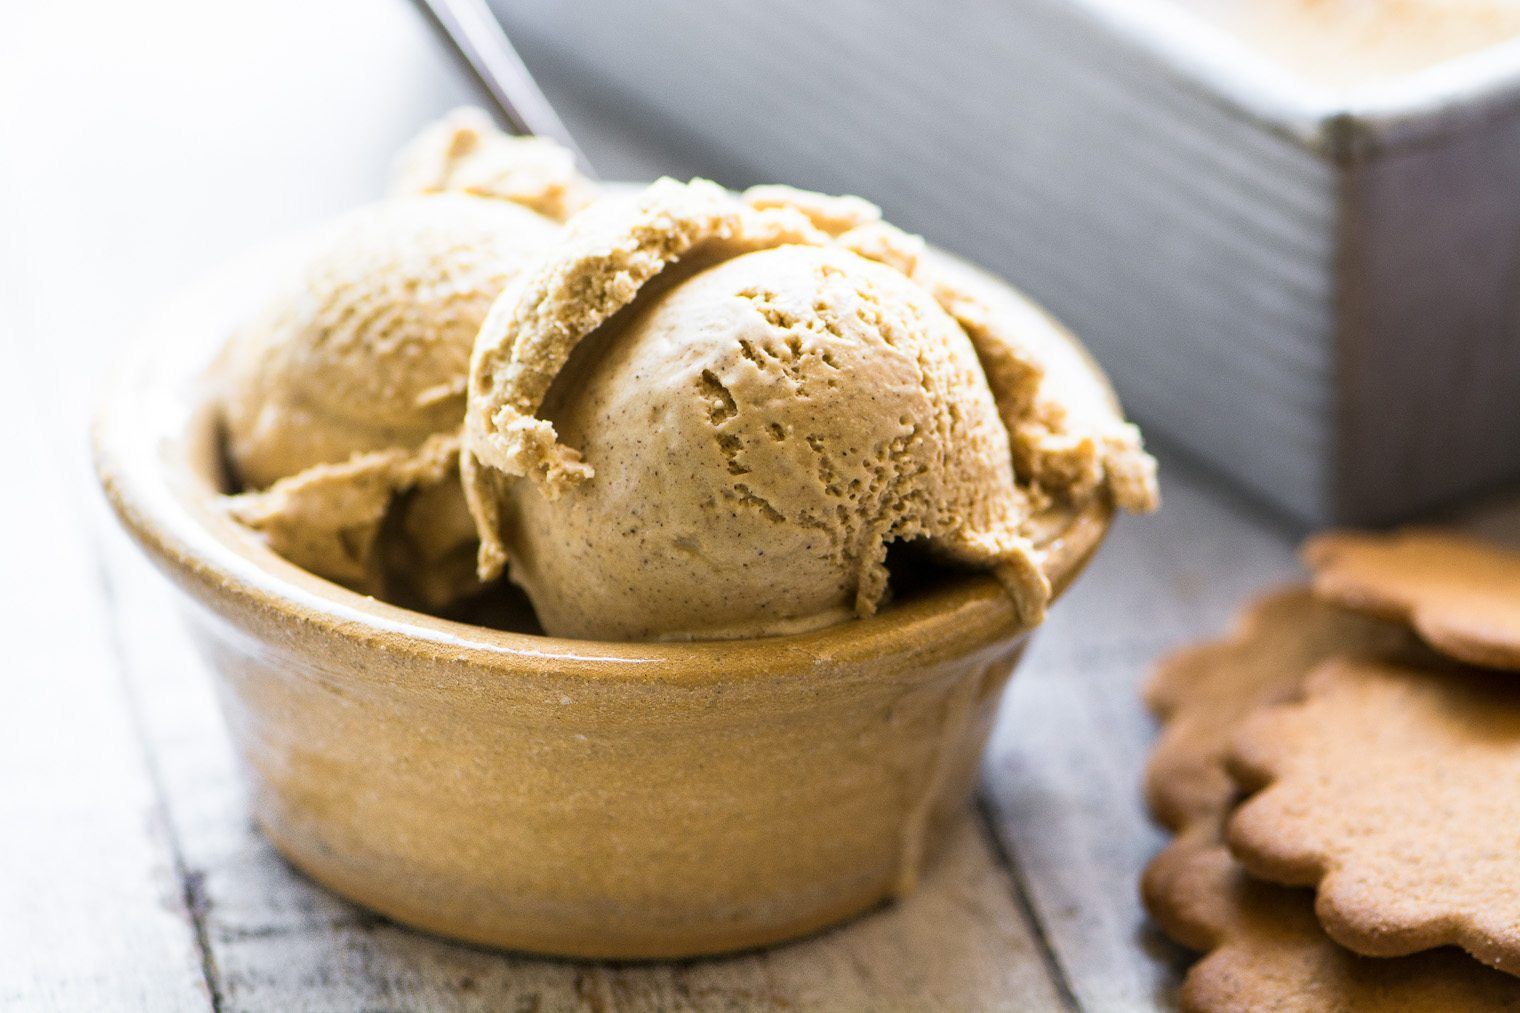 gingerbread ice cream in a small bowl